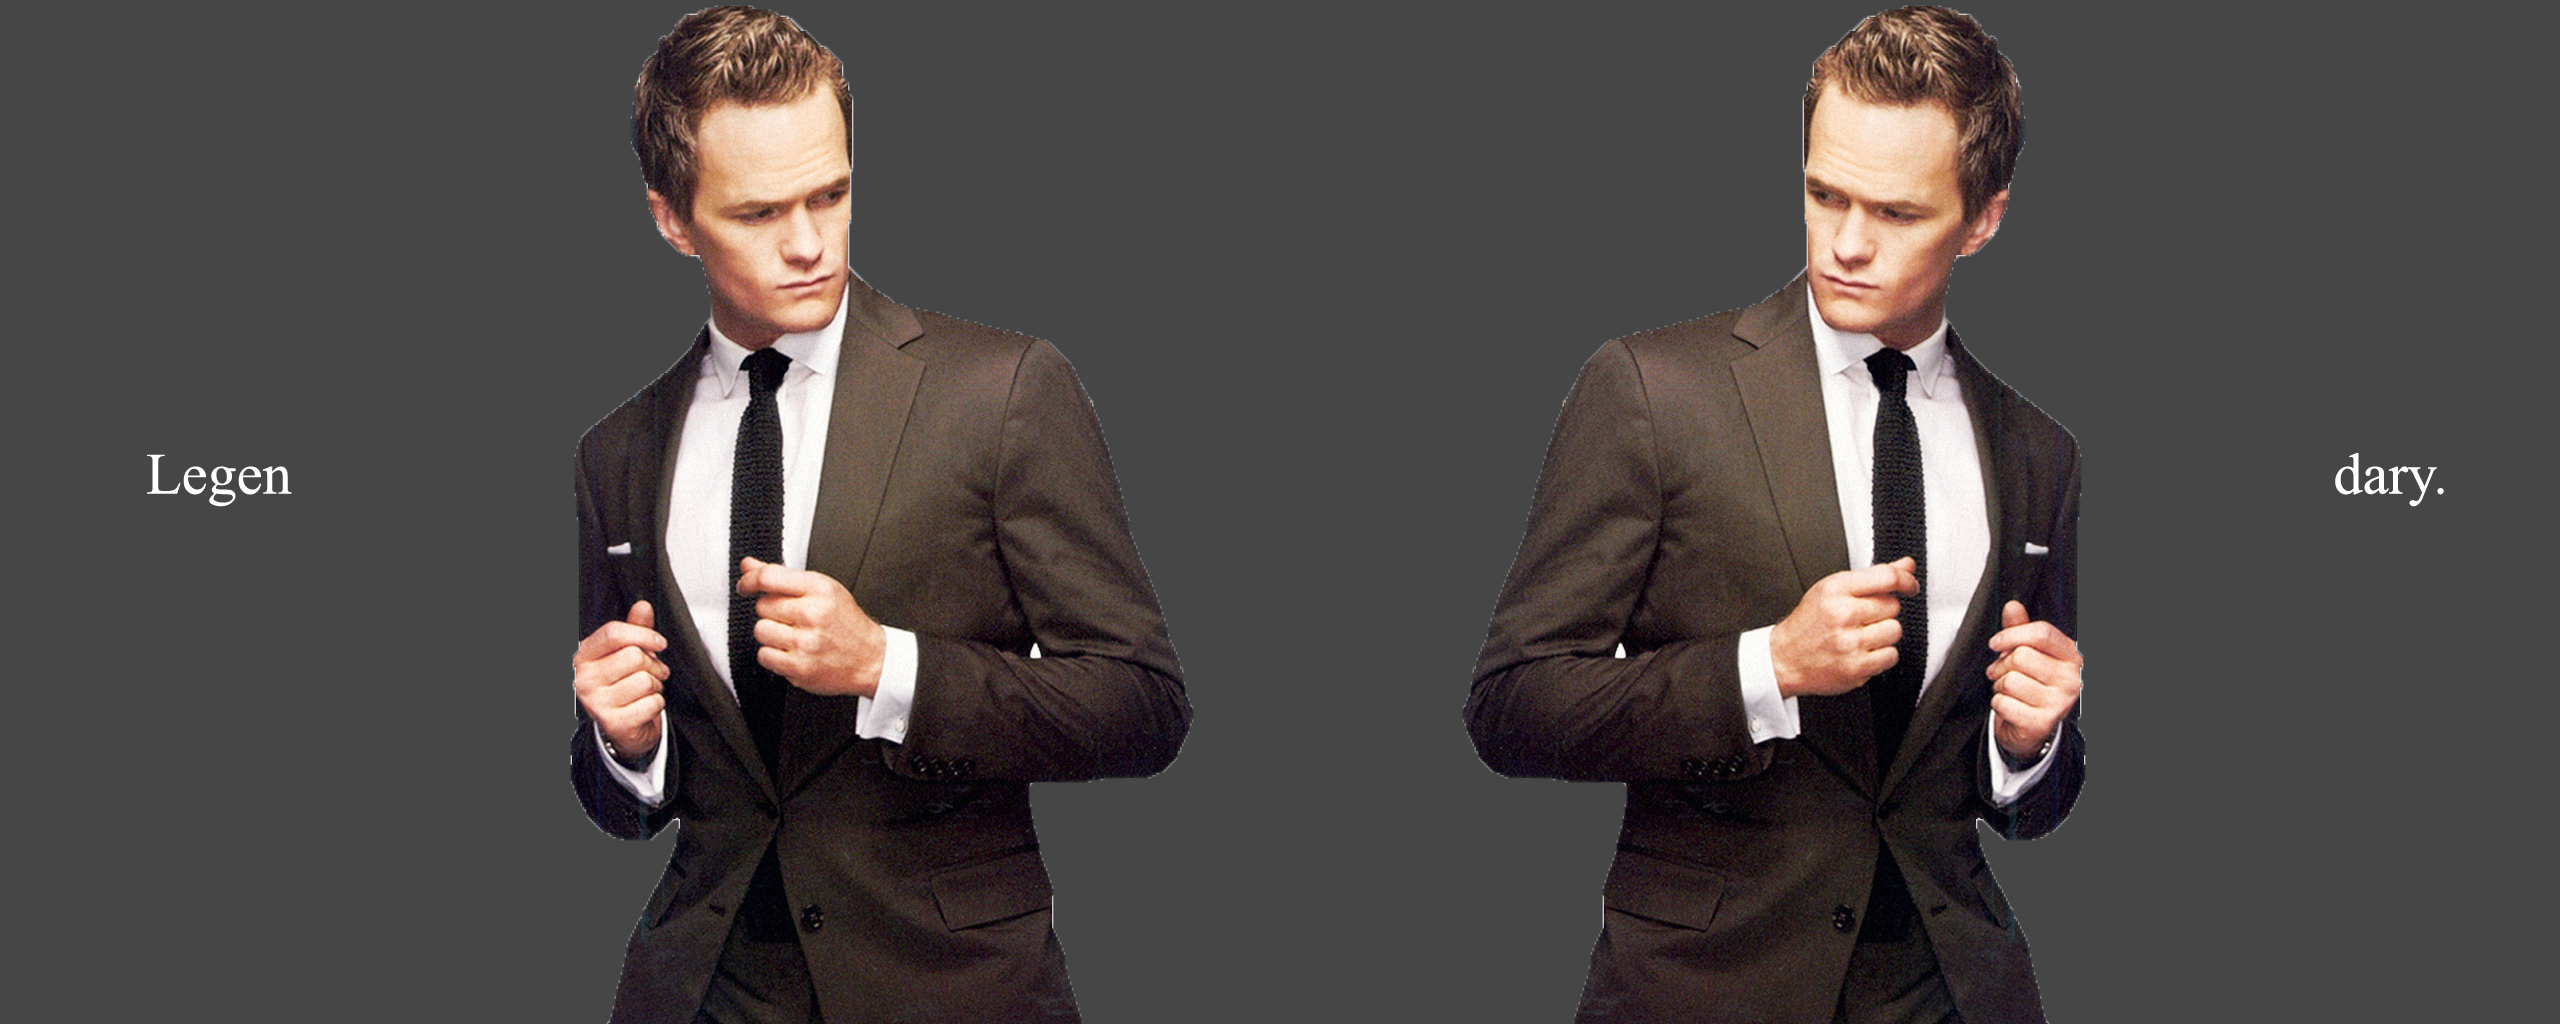 neil Patrick harris Barney HD Wallpaper